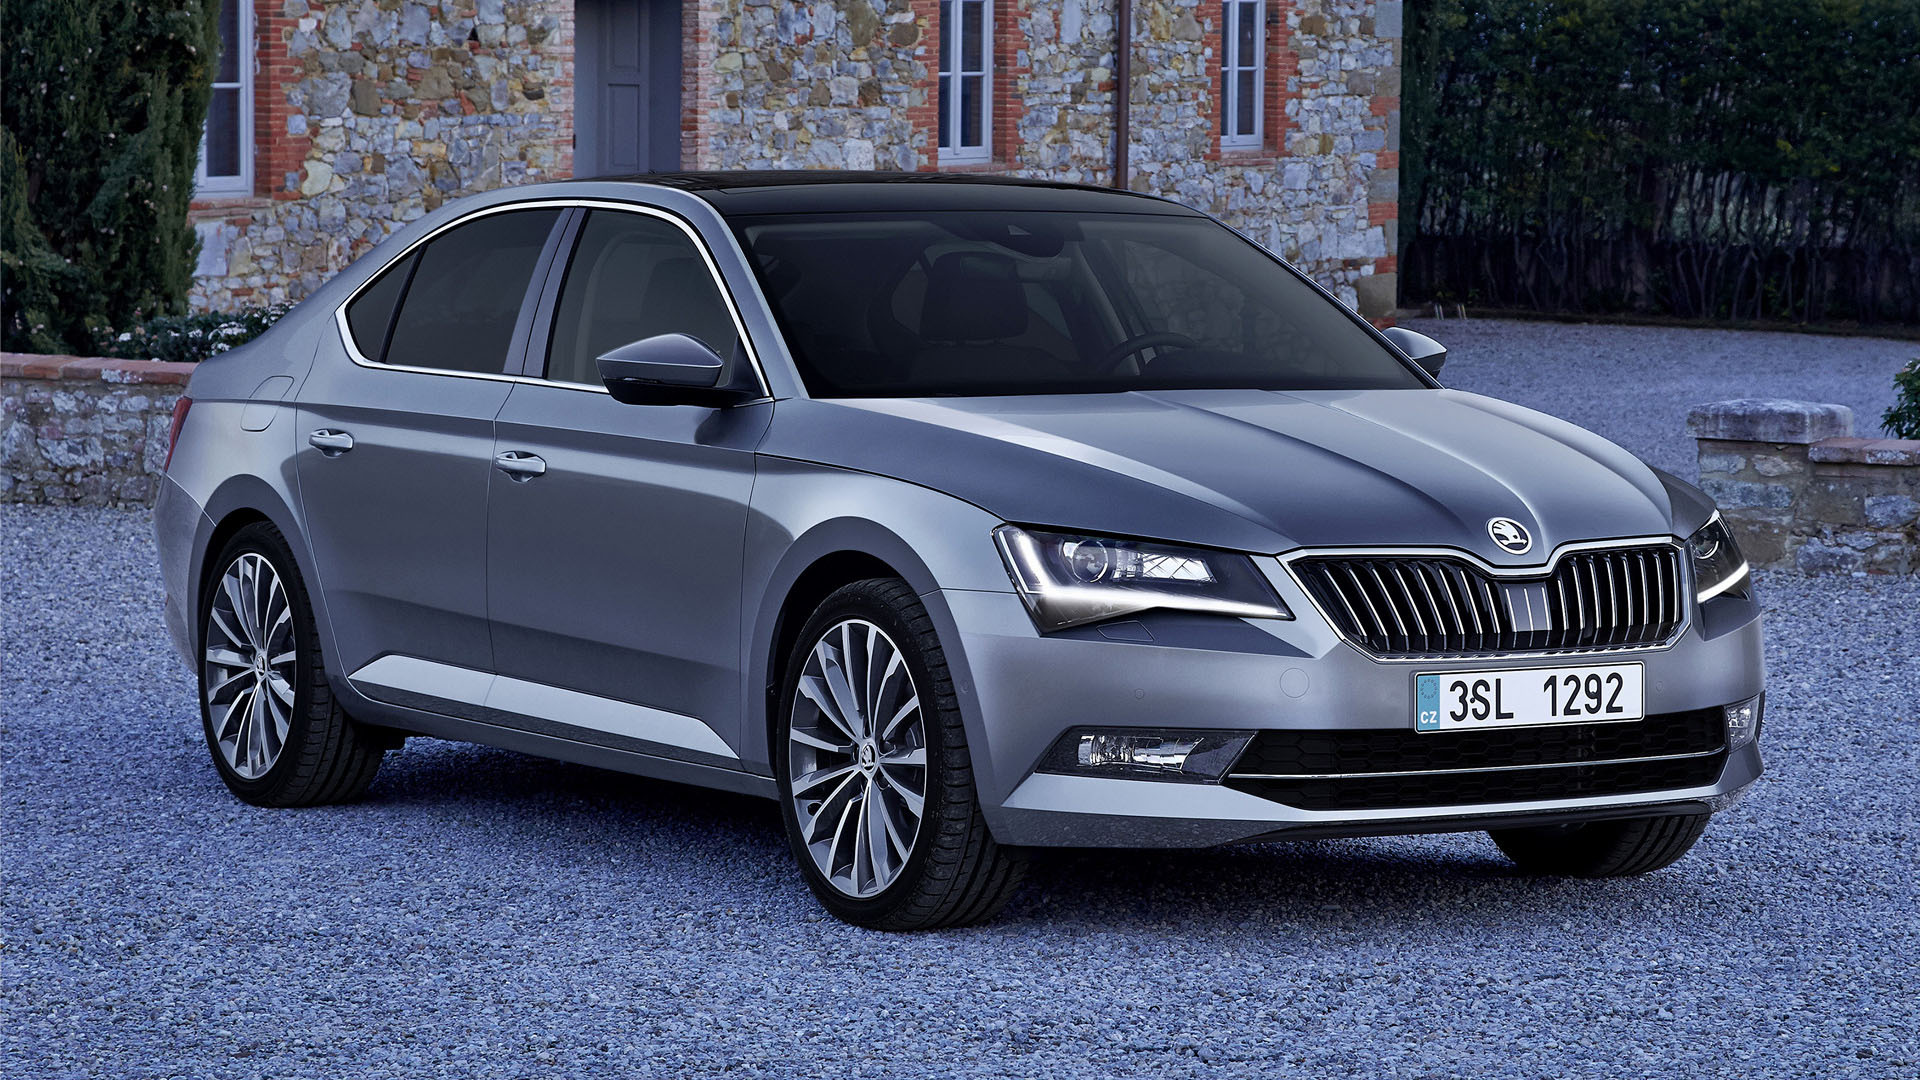 Skoda Superb 2017 Hd Wallpapers